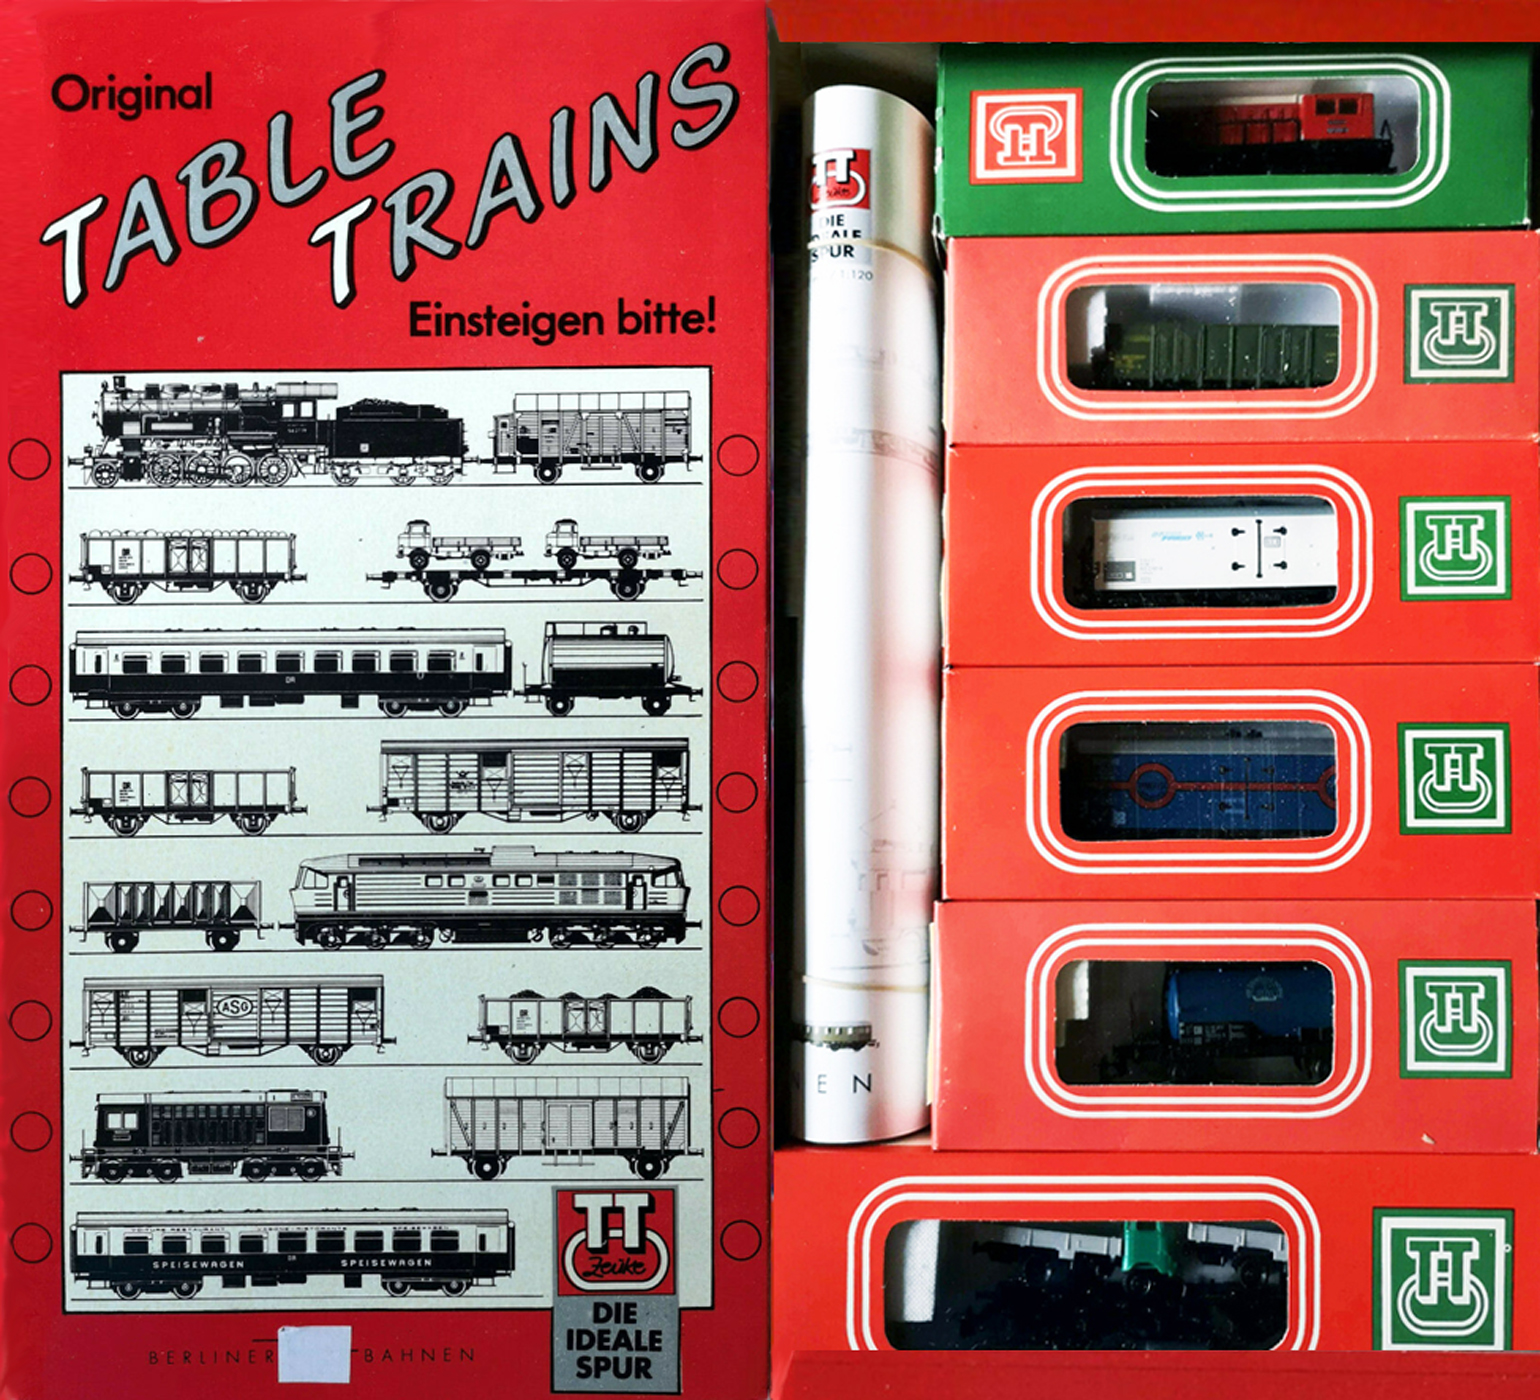 01249 BTTB - Original Table Trains-SET